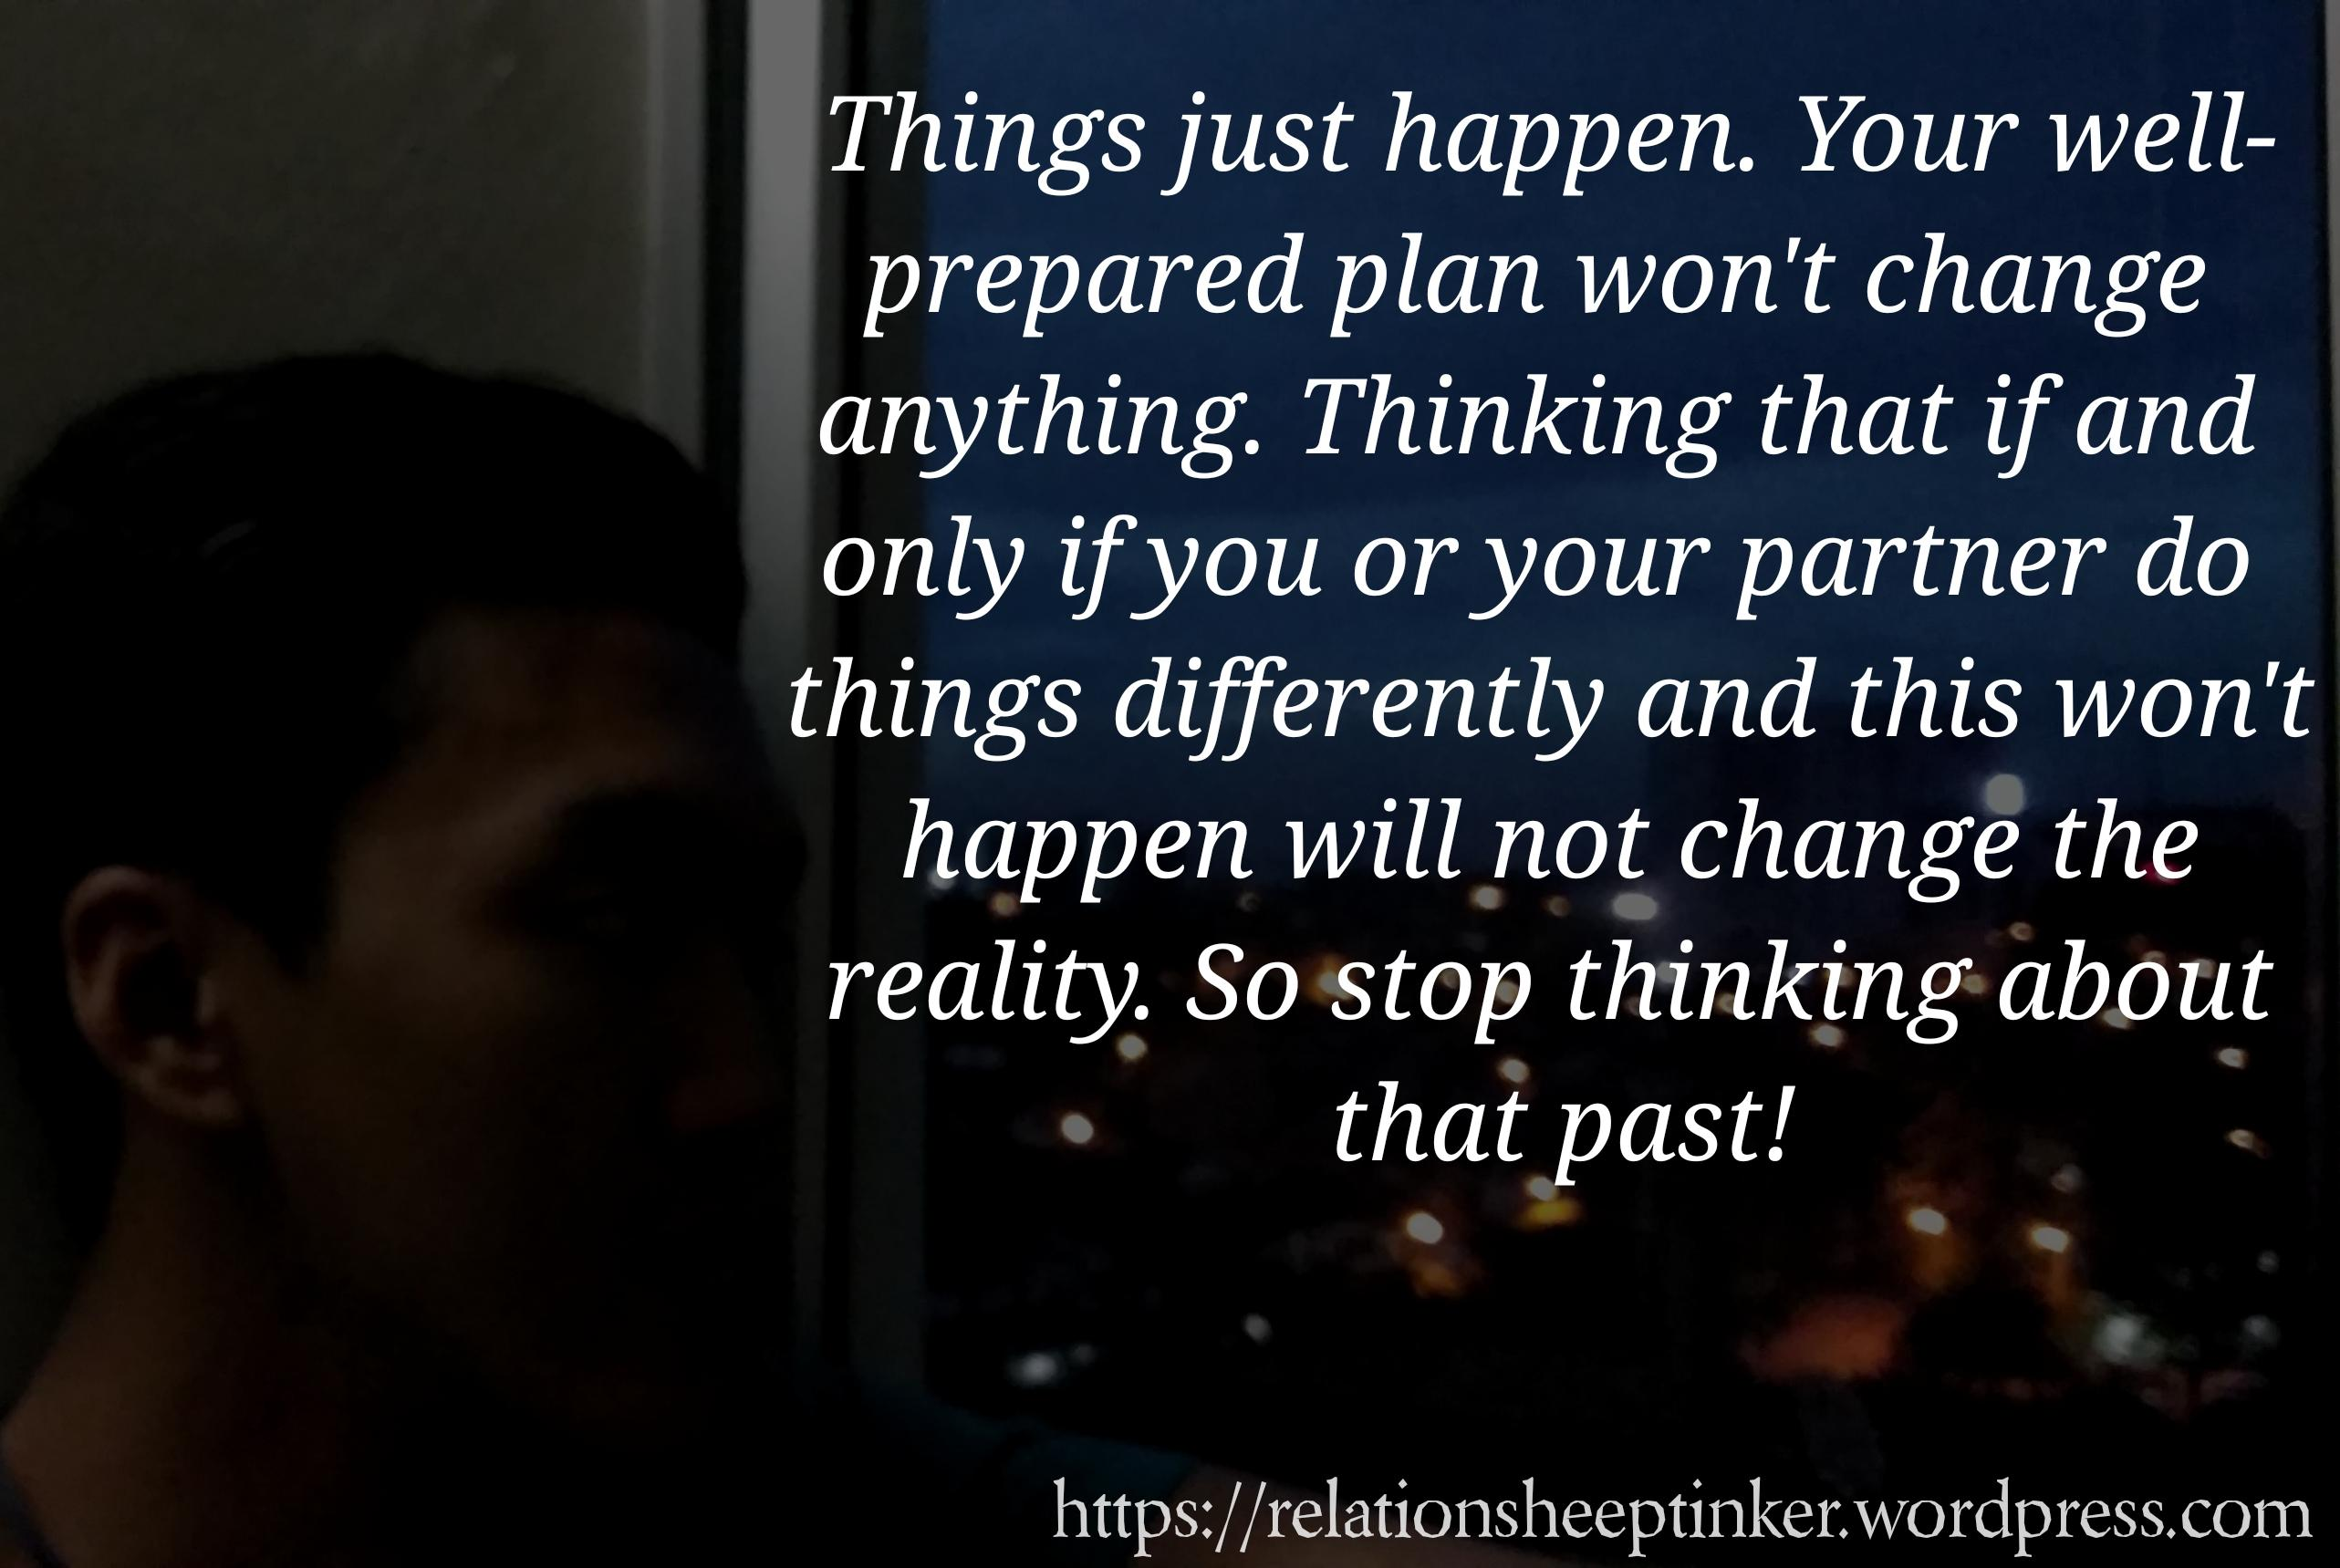 Things just happen. Your well- prepared plan won't change anything. Thinking that if and only if you or your partner do things difi'erently and this won't happen will not change the reality. So stop thinking about that past! https://relationsheeptinker.wordpress.com https://inspirational.ly